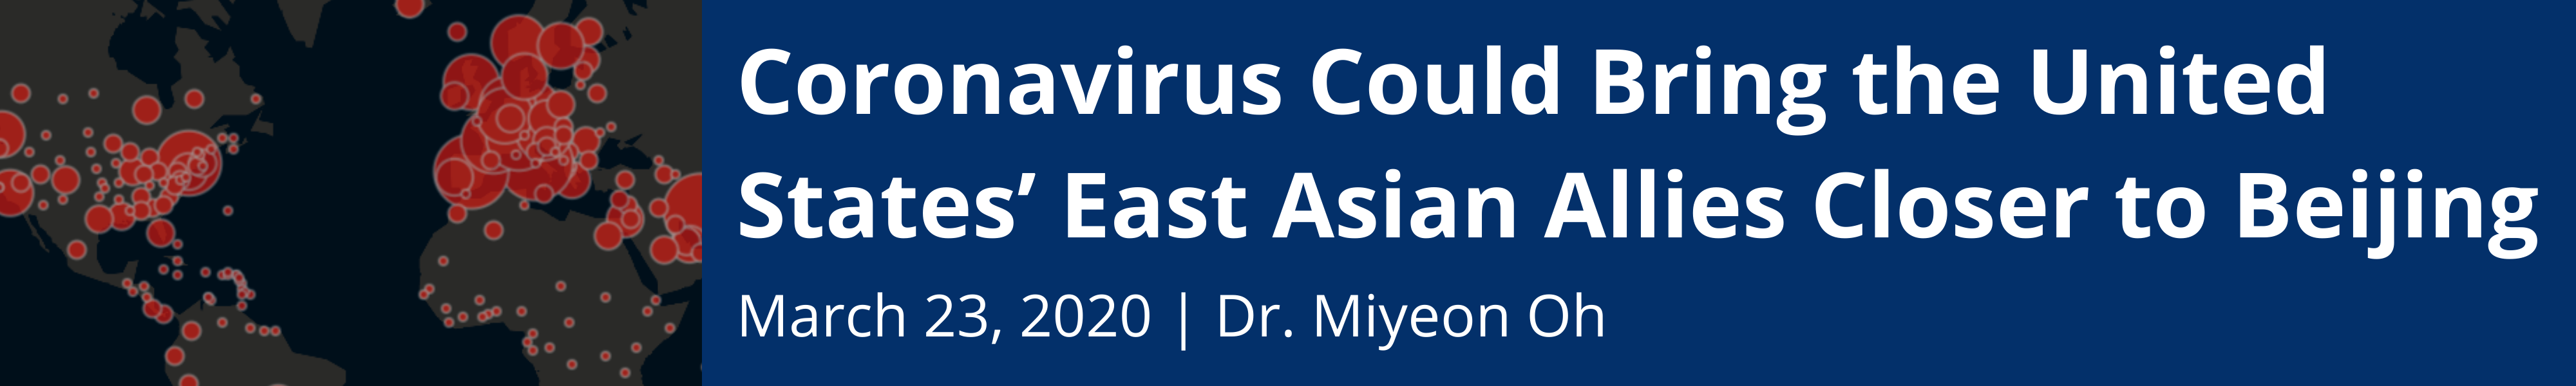 Coronavirus Could Bring the United States' East Asian Allies Closer to Beijing